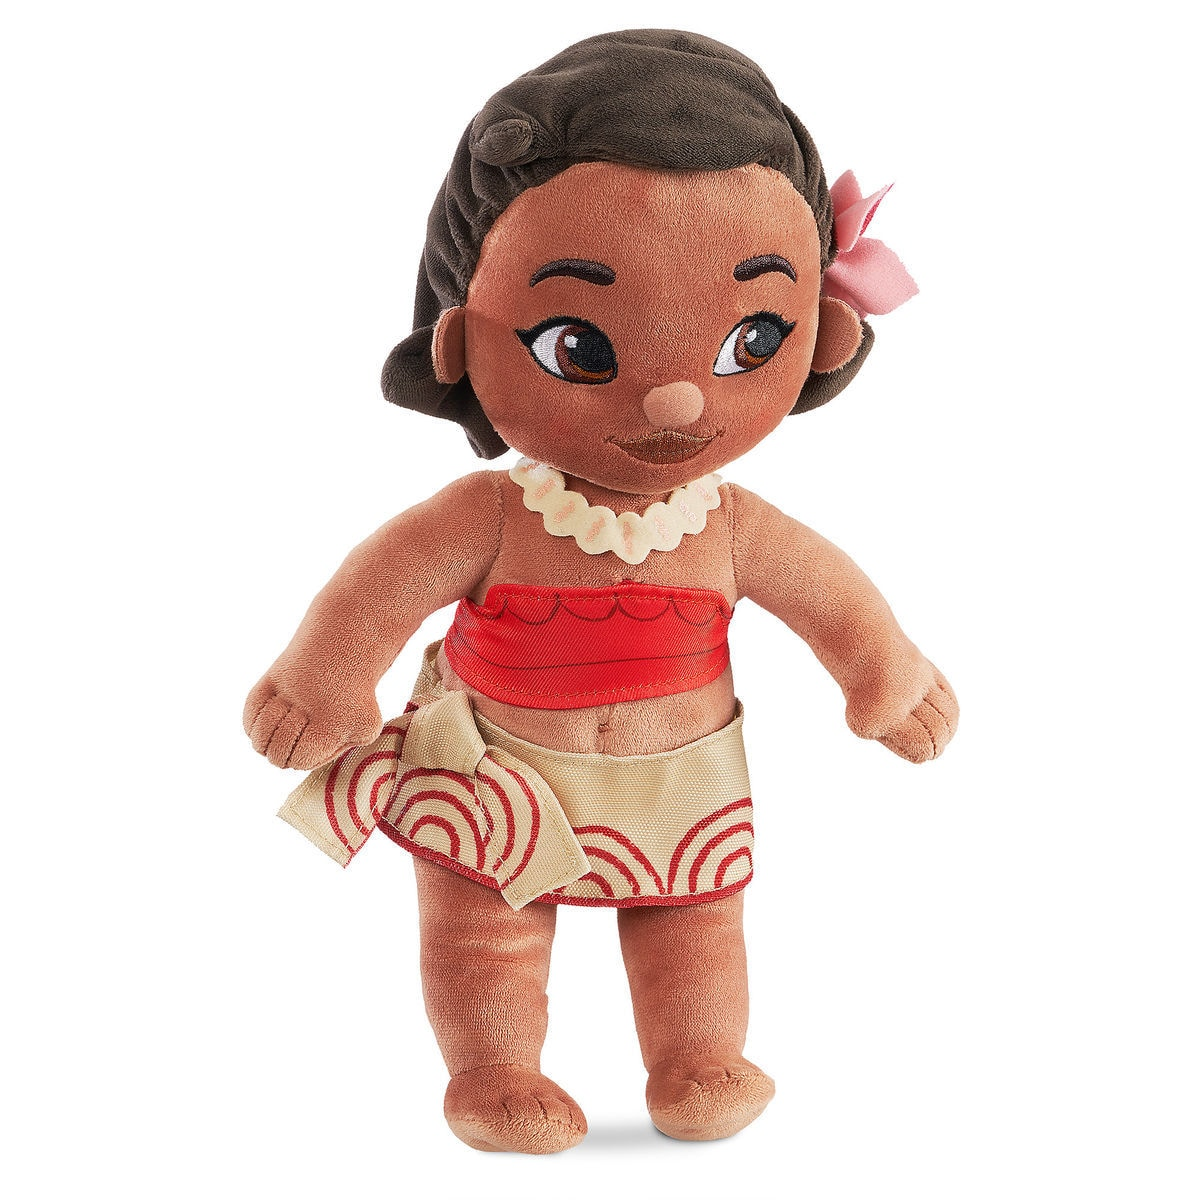 Disney Animators' Collection Moana Small Plush Toddler Doll